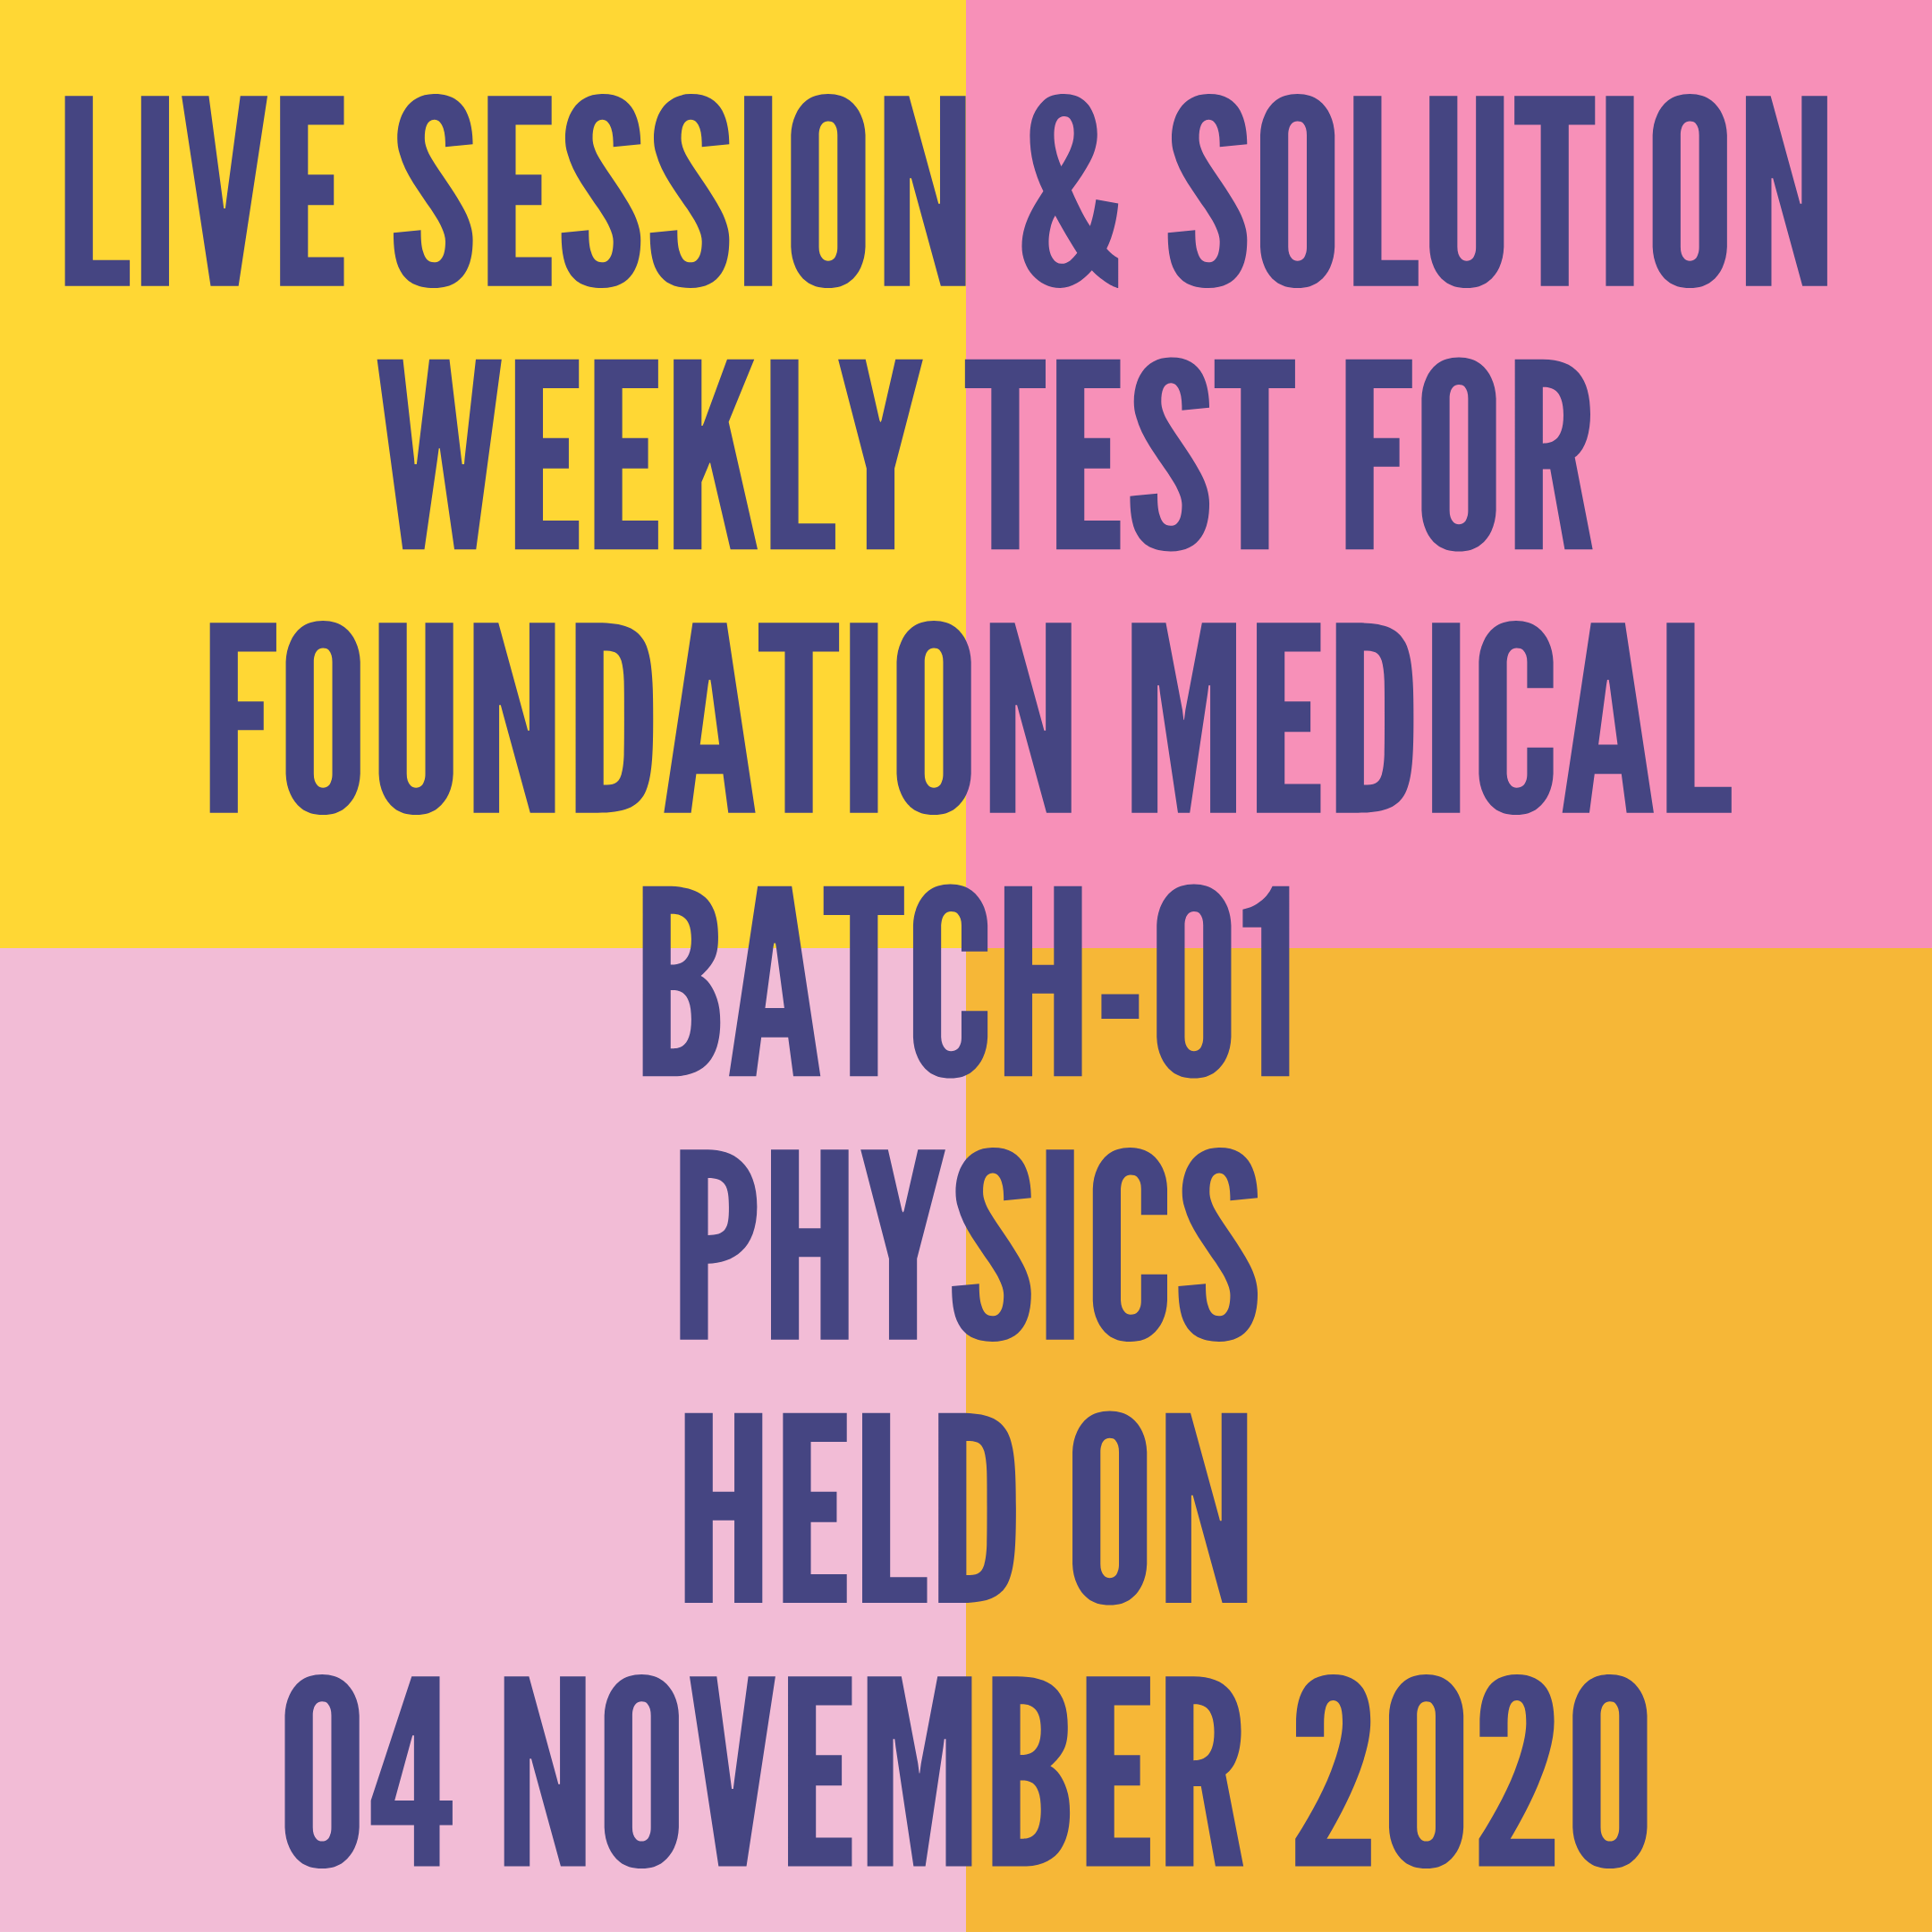 LIVE SESSION & SOLUTION  WEEKLY TEST FOR FOUNDATION MEDICAL BATCH-01 PHYSICS HELD ON 04 NOVEMBER 2020